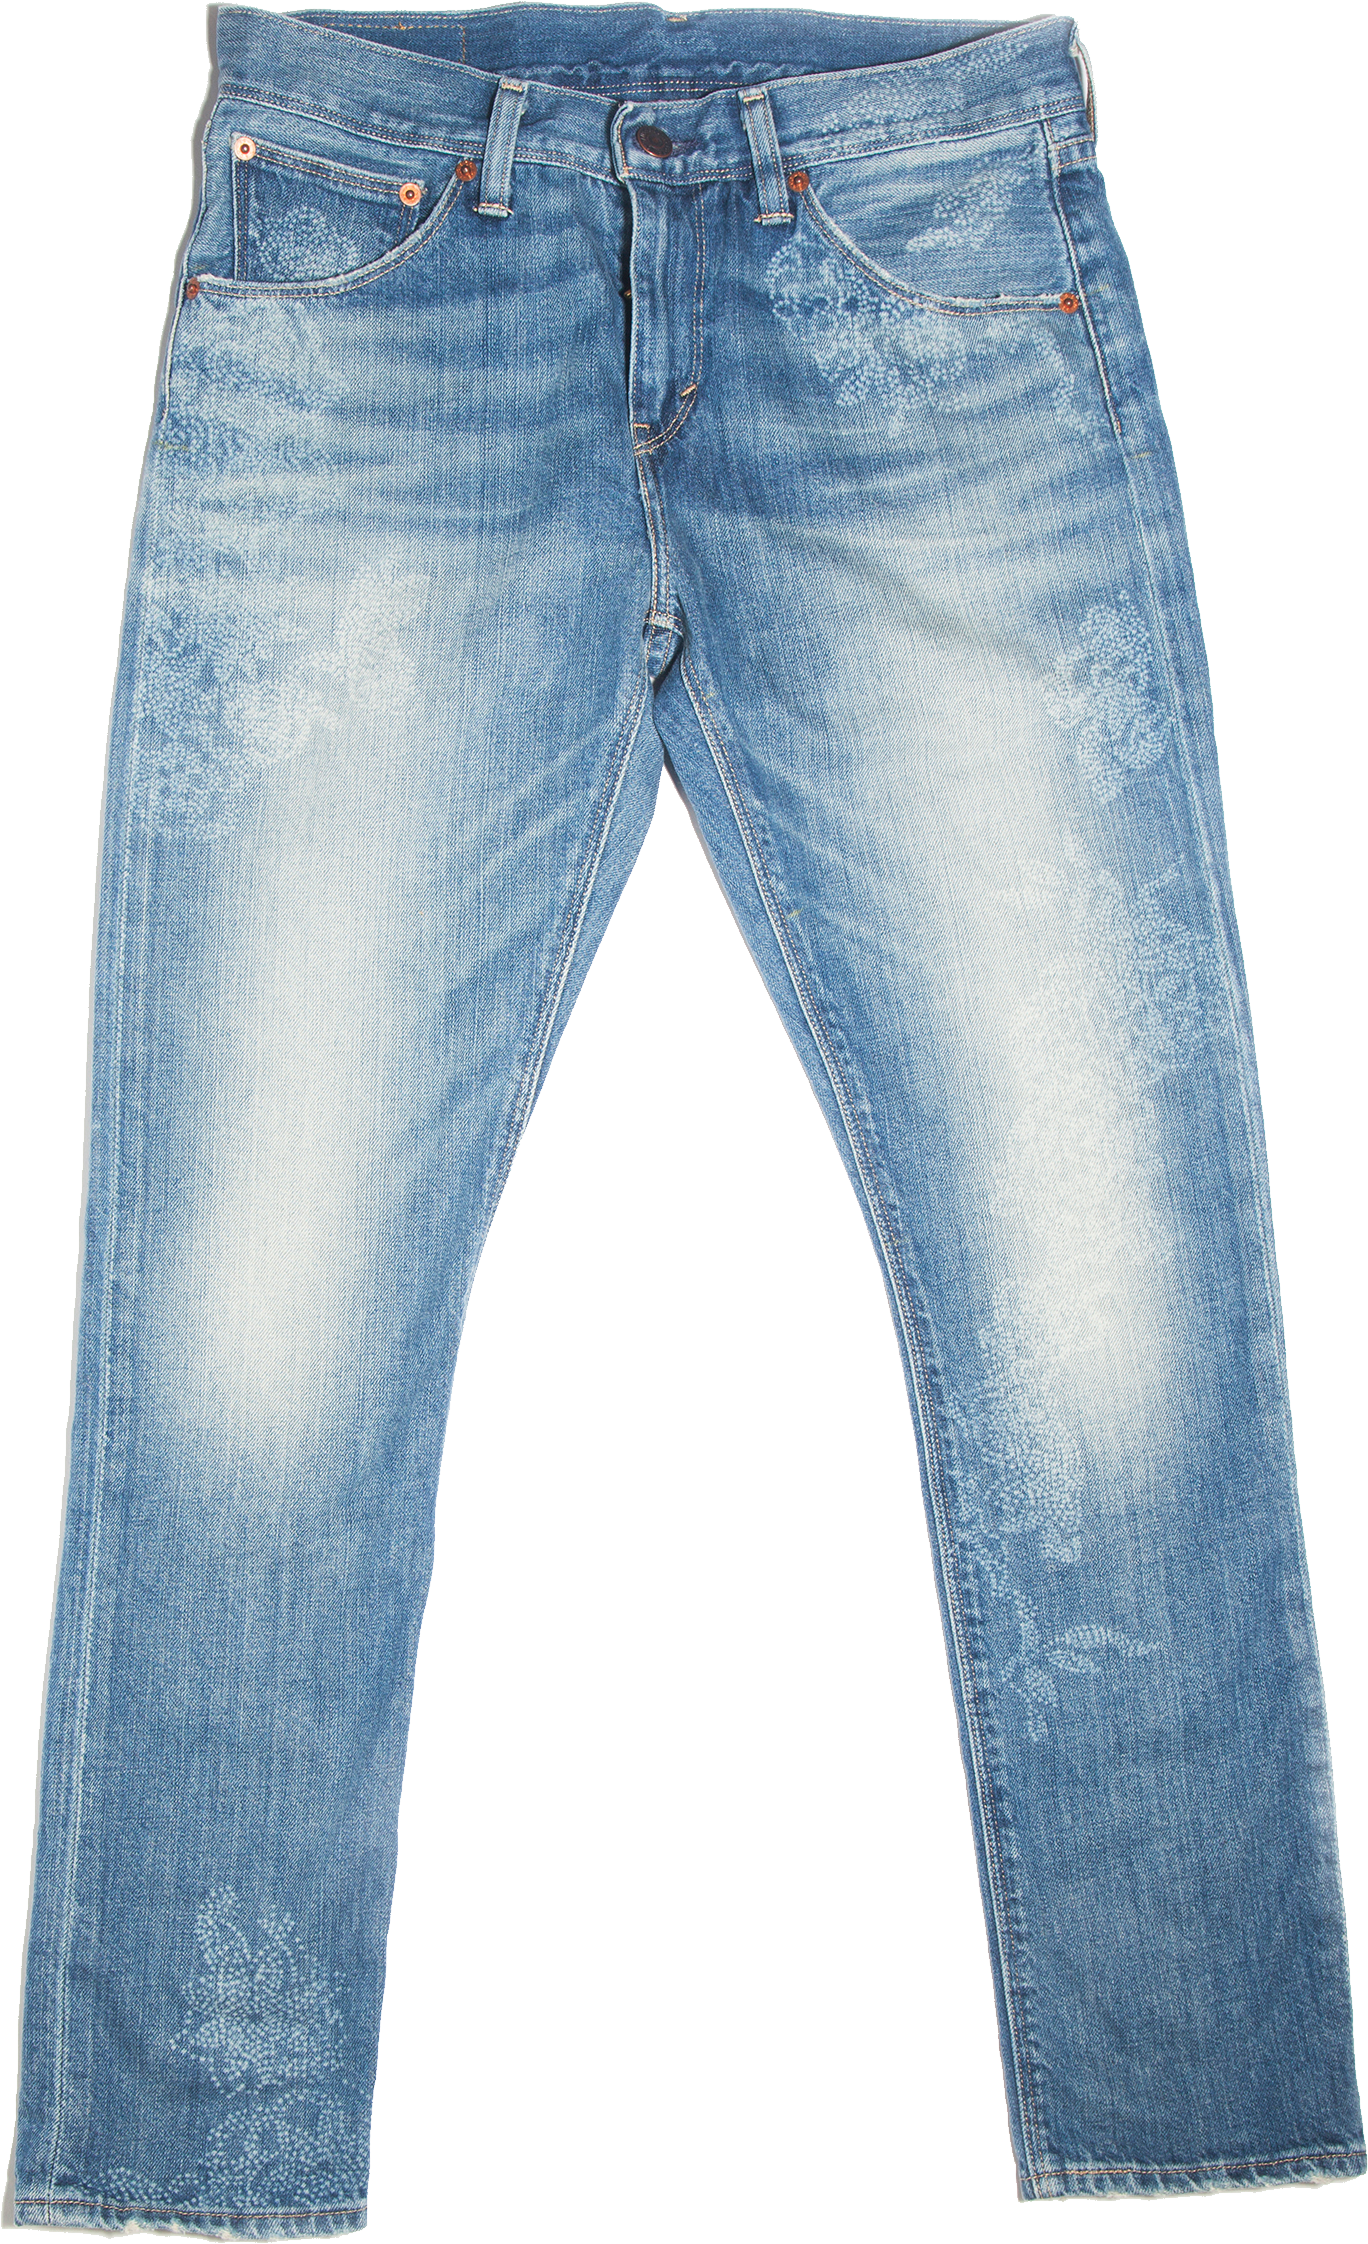 Jeans PNG - 16036